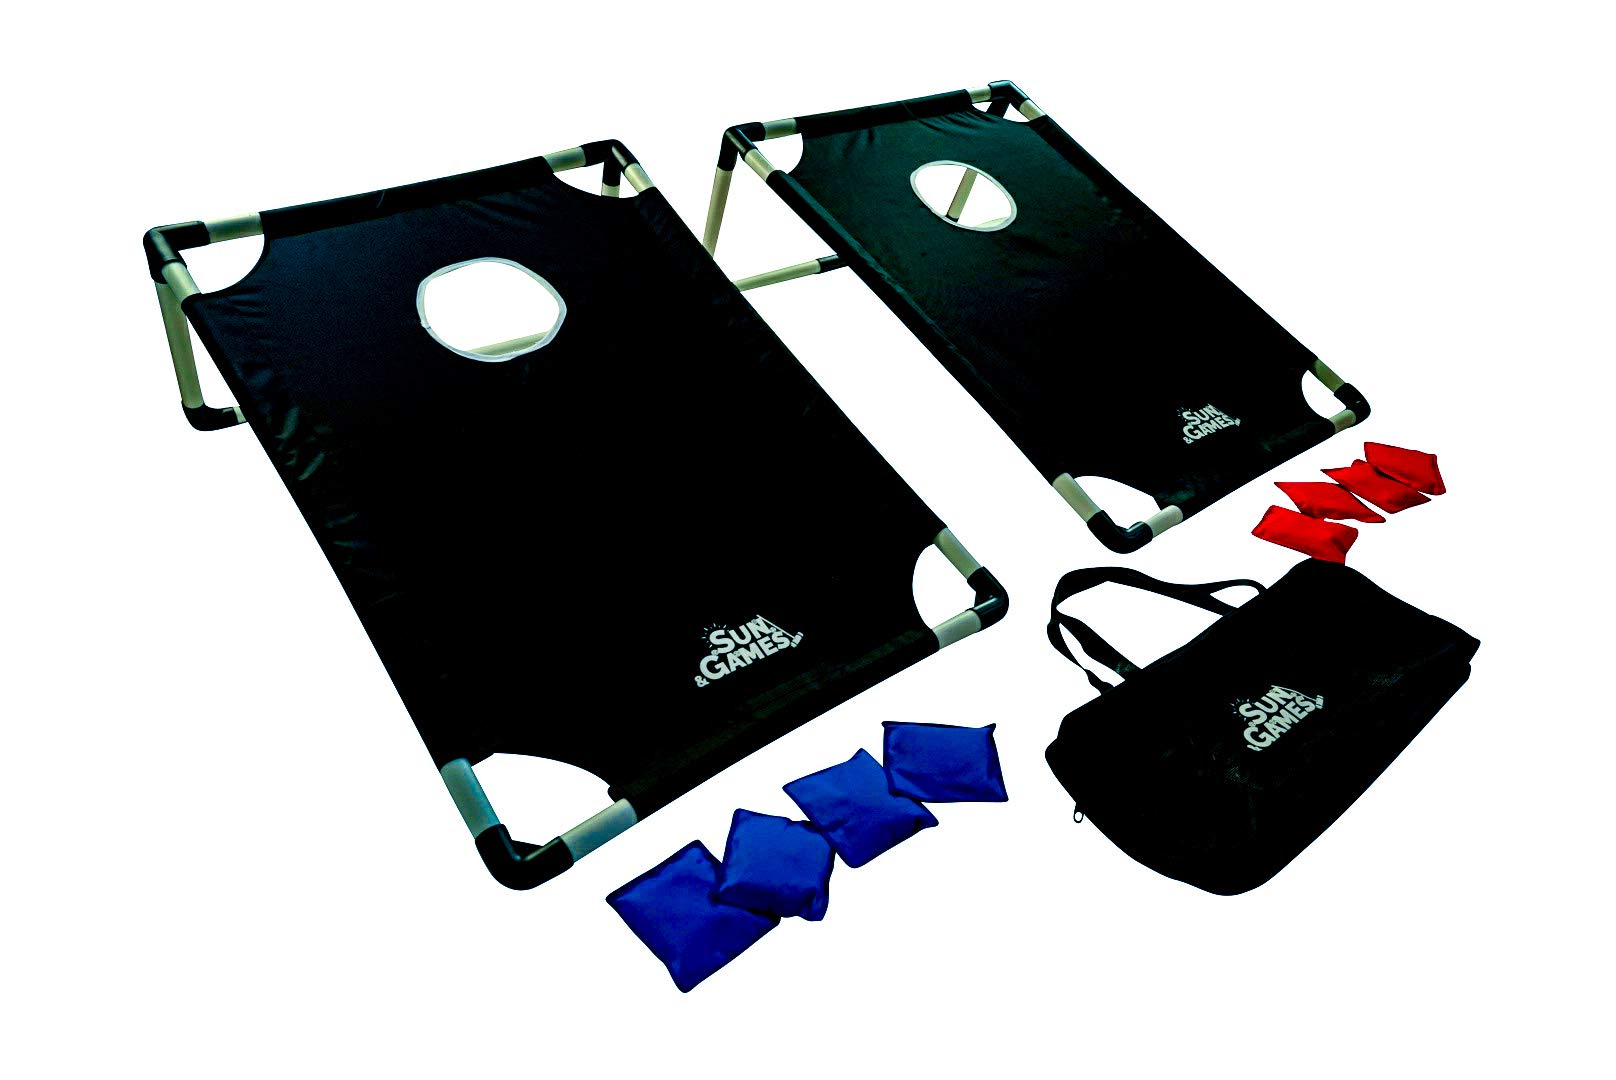 Portable PVC Cornhole Game Set Made with All-Weather, Tear-Resistant Fabric | 8 Beanbags and Carry Case | Tailgate Size by Sun & Games